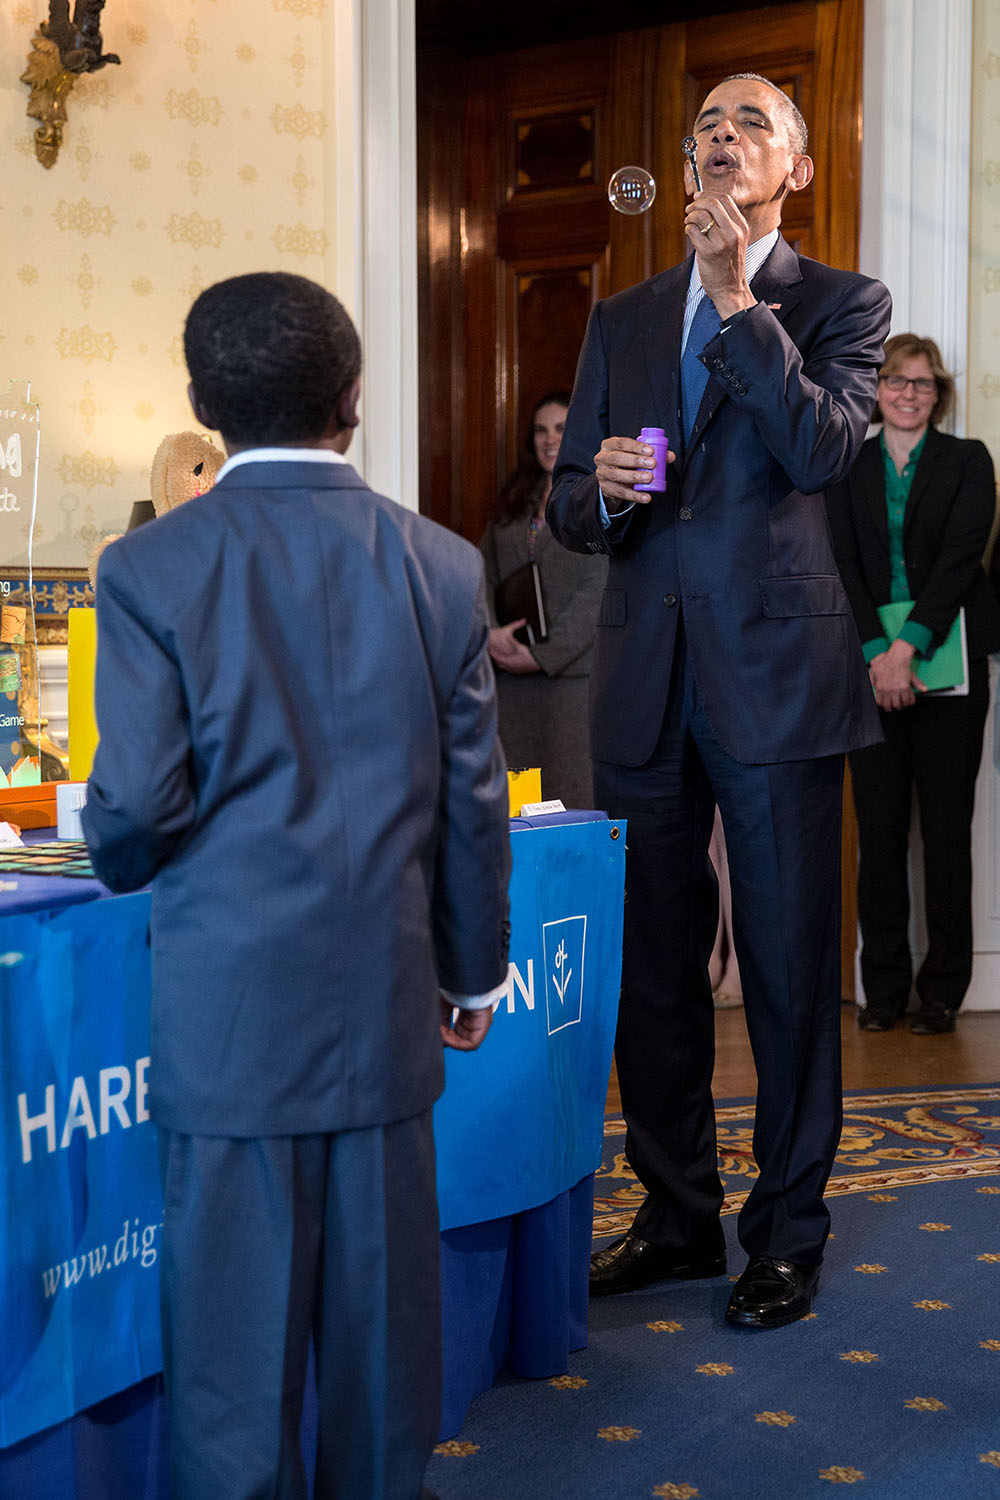 President Barack Obama blows a bubble while talking with nine-year-old Jacob Leggette about his experiments with additive and subtractive manufacturing with a 3D printer, his project that was part of the White House Science Fair in the Blue Room of the White House, April 13, 2016. (Official White House Photo by Pete Souza)